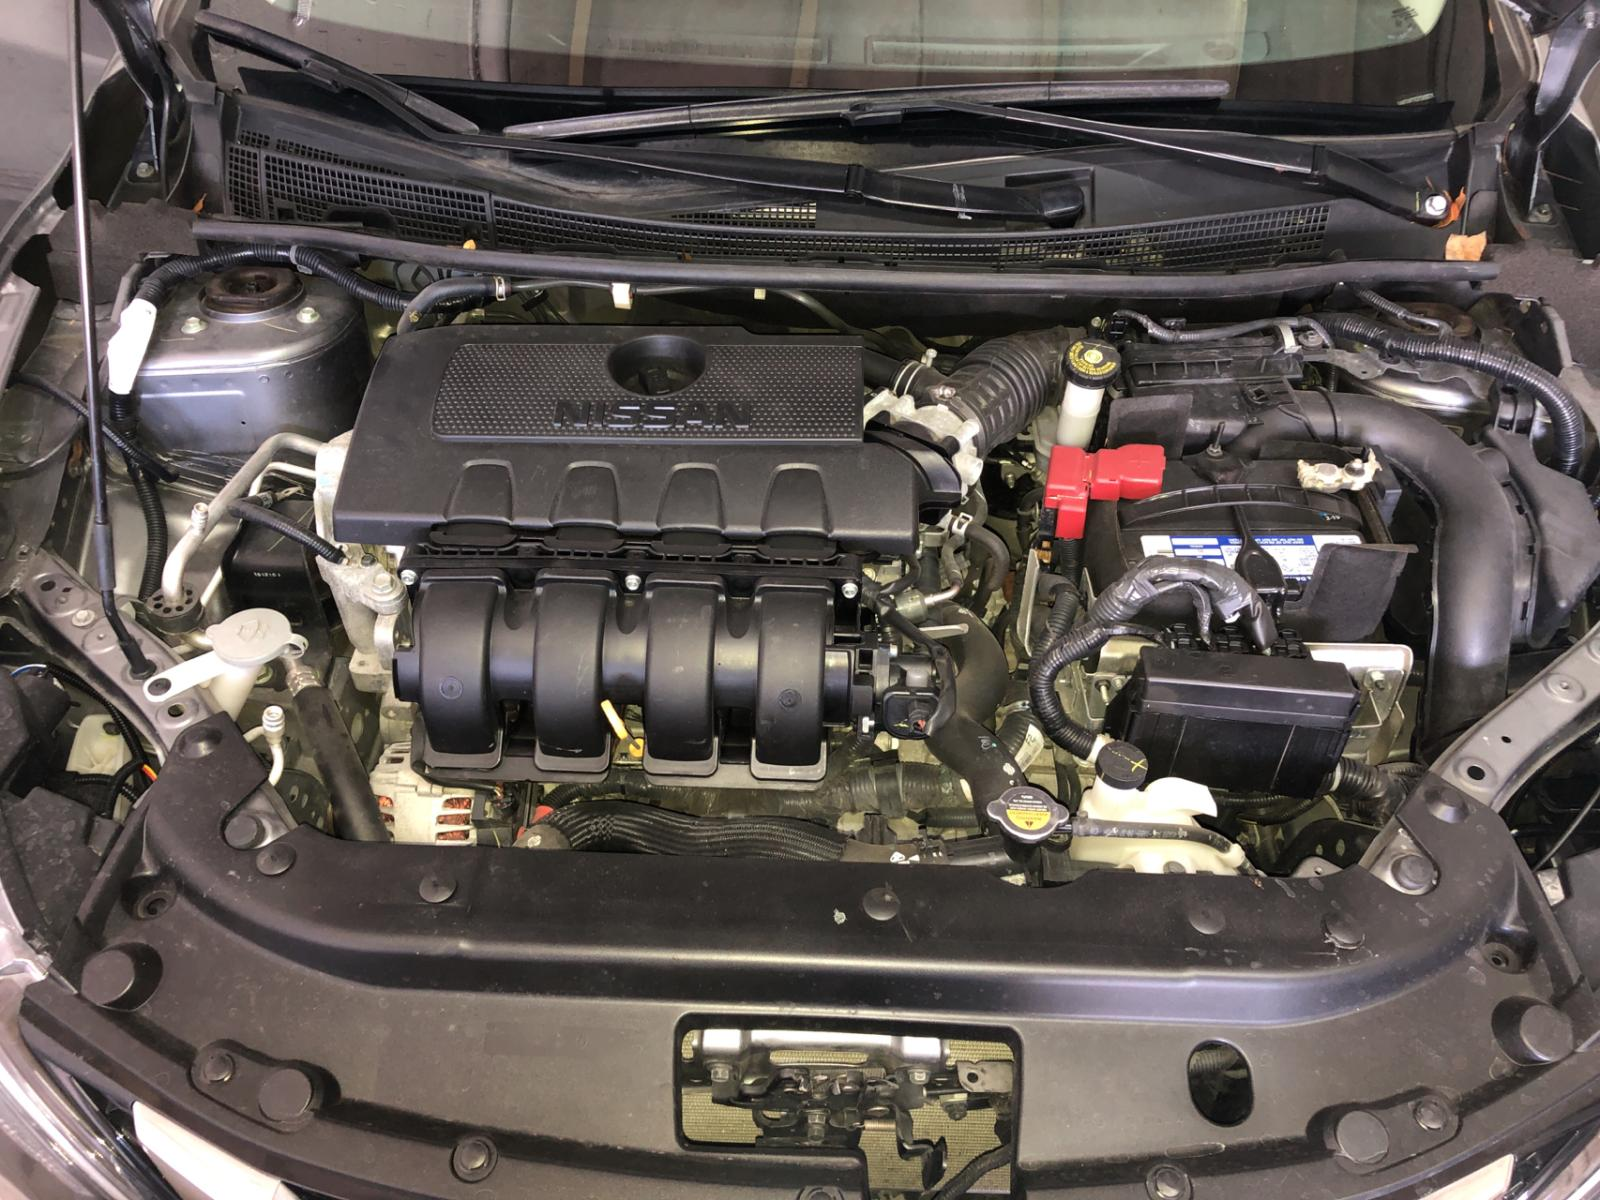 3N1AB7AP7GY245674 - 2016 Nissan Sentra S 1.8L inside view